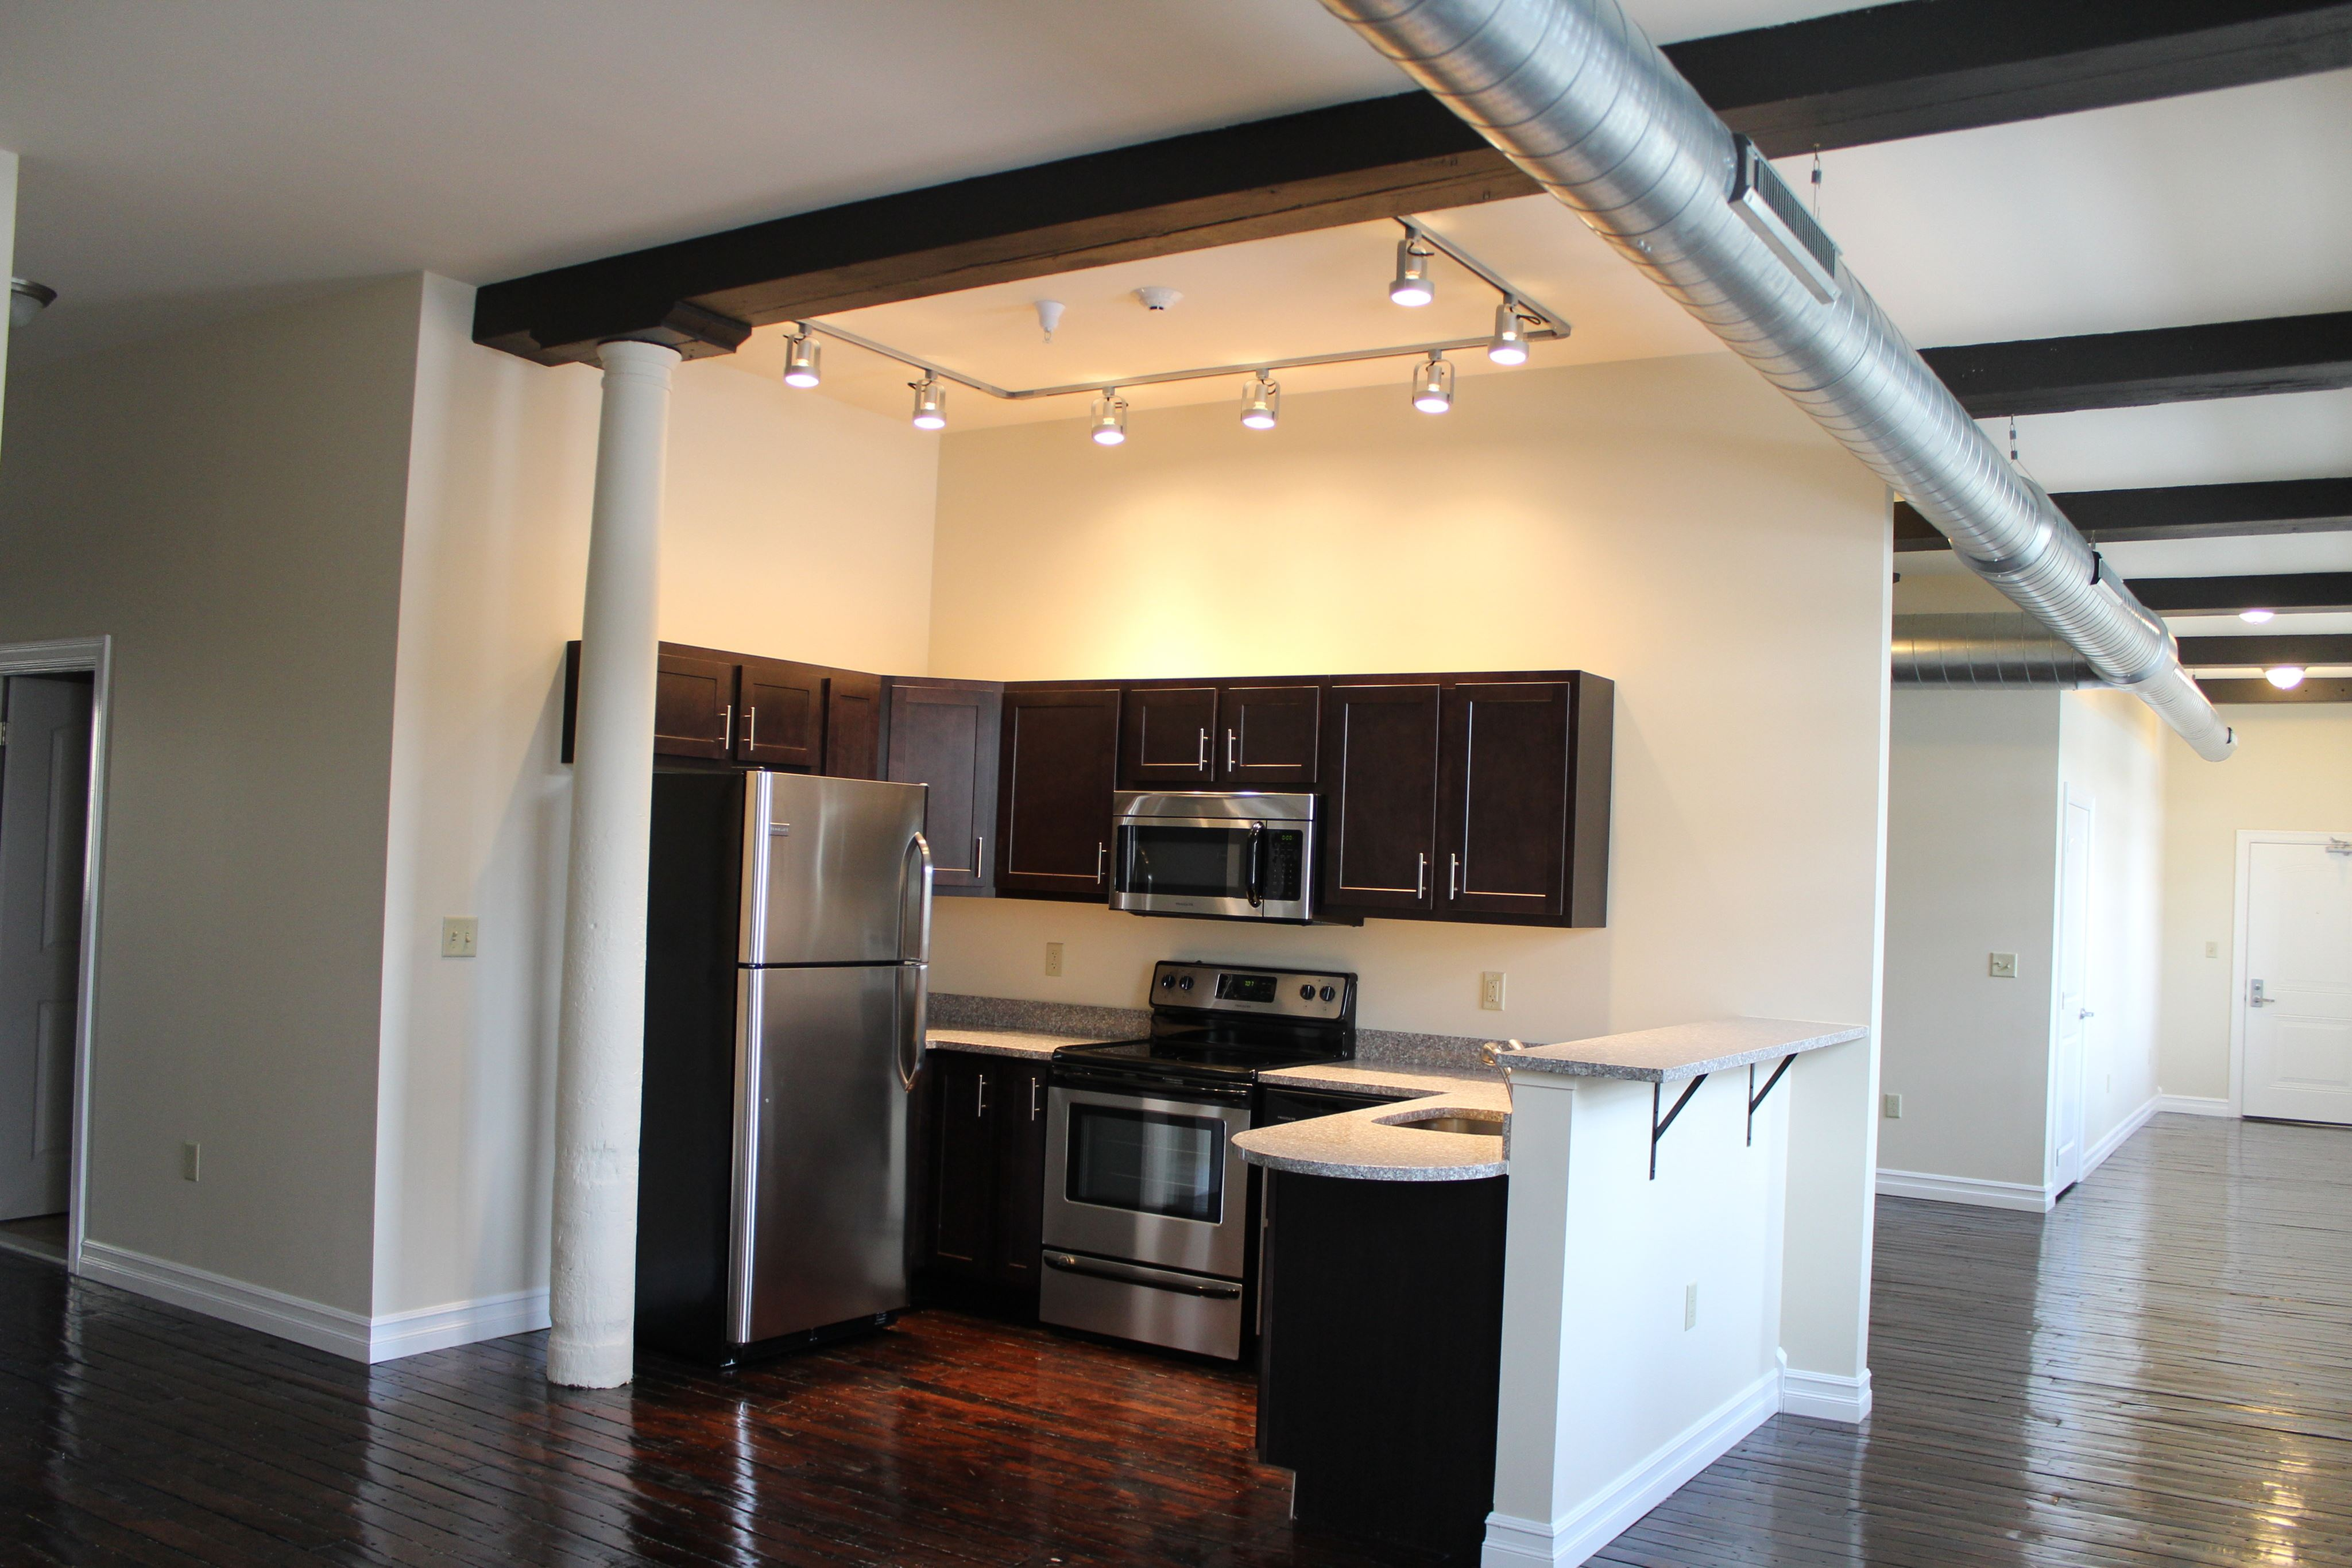 The Lofts at Harmony Mills for rent